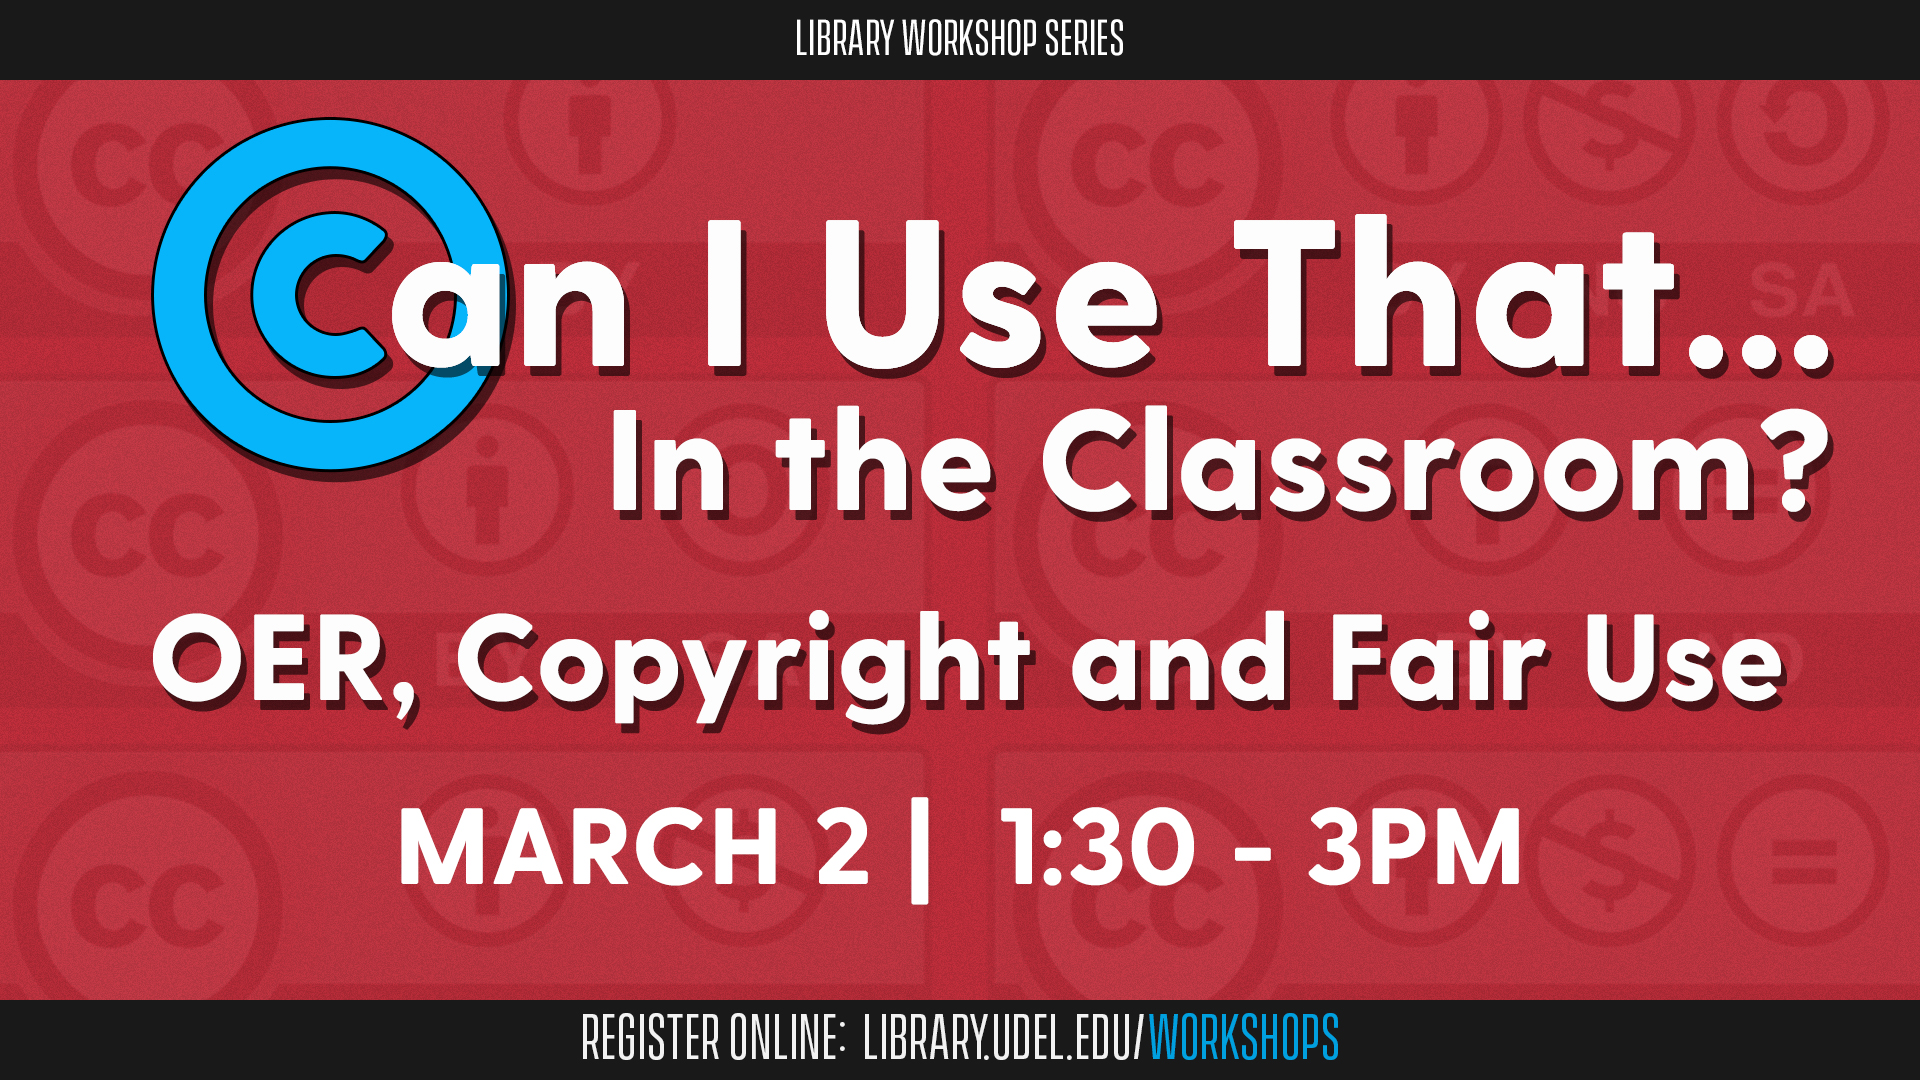 Can I Use That in the Classroom? OER, Copyright and Fair Use